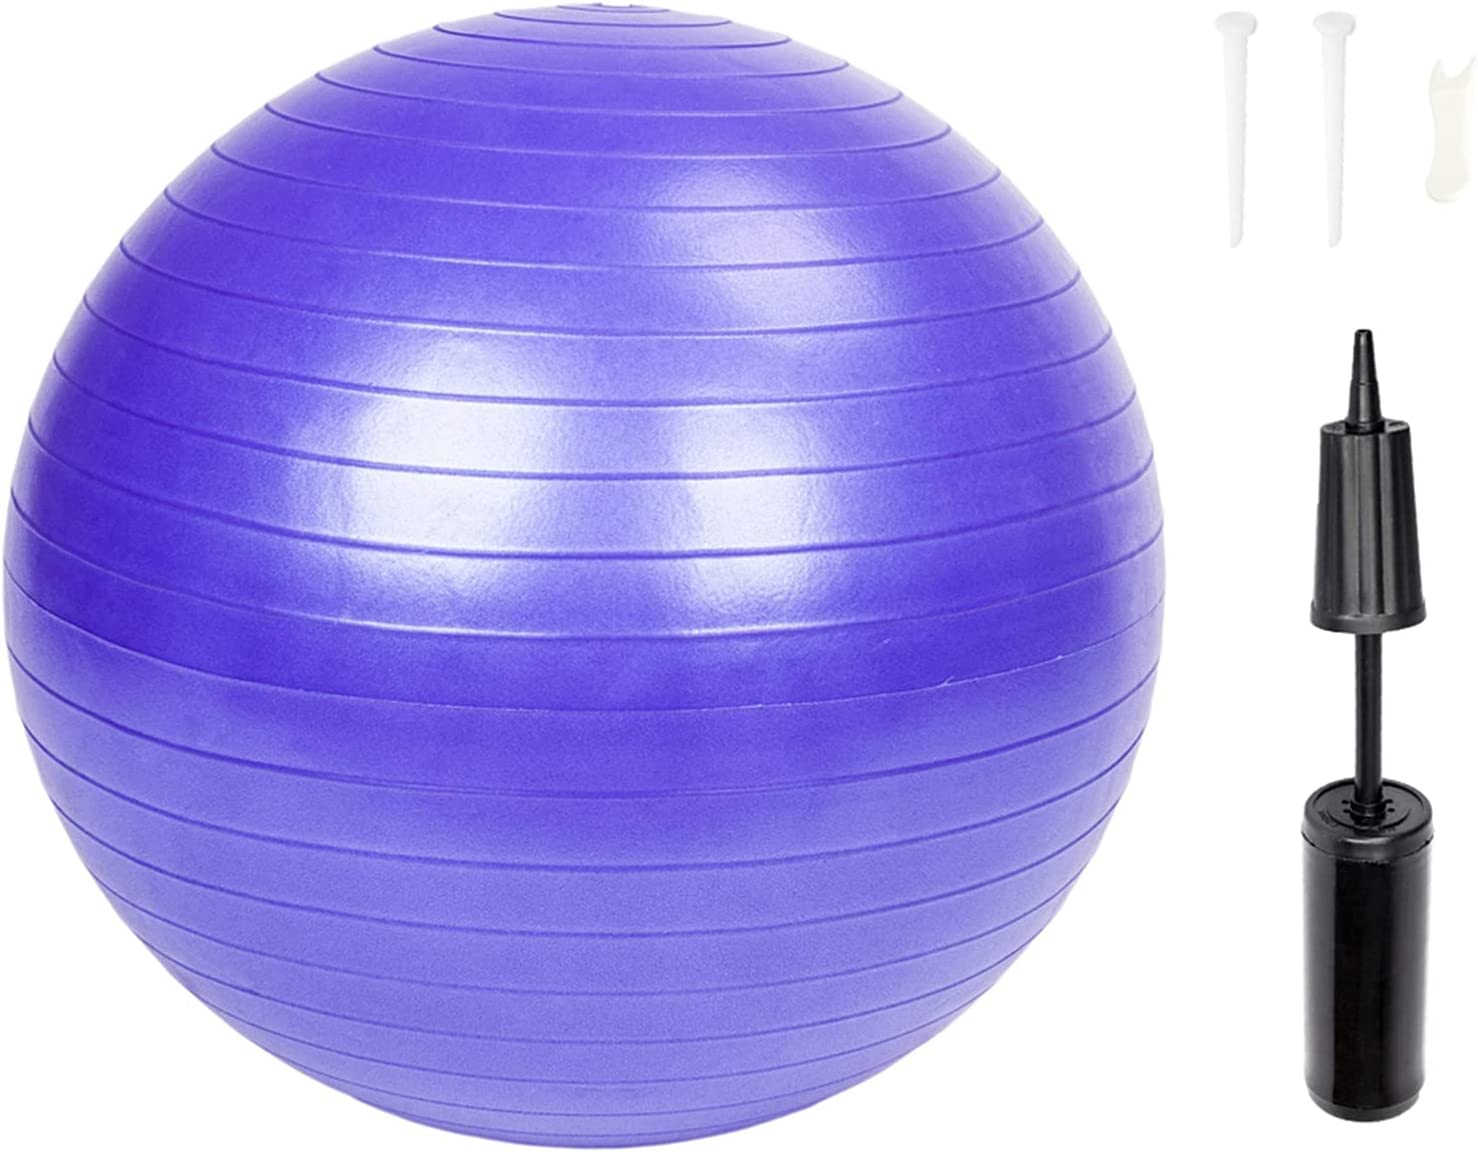 Xmeihui Exercise Ball Yoga Popular shop is the lowest Special price for a limited time price challenge Chair Gym for Pump Home Air